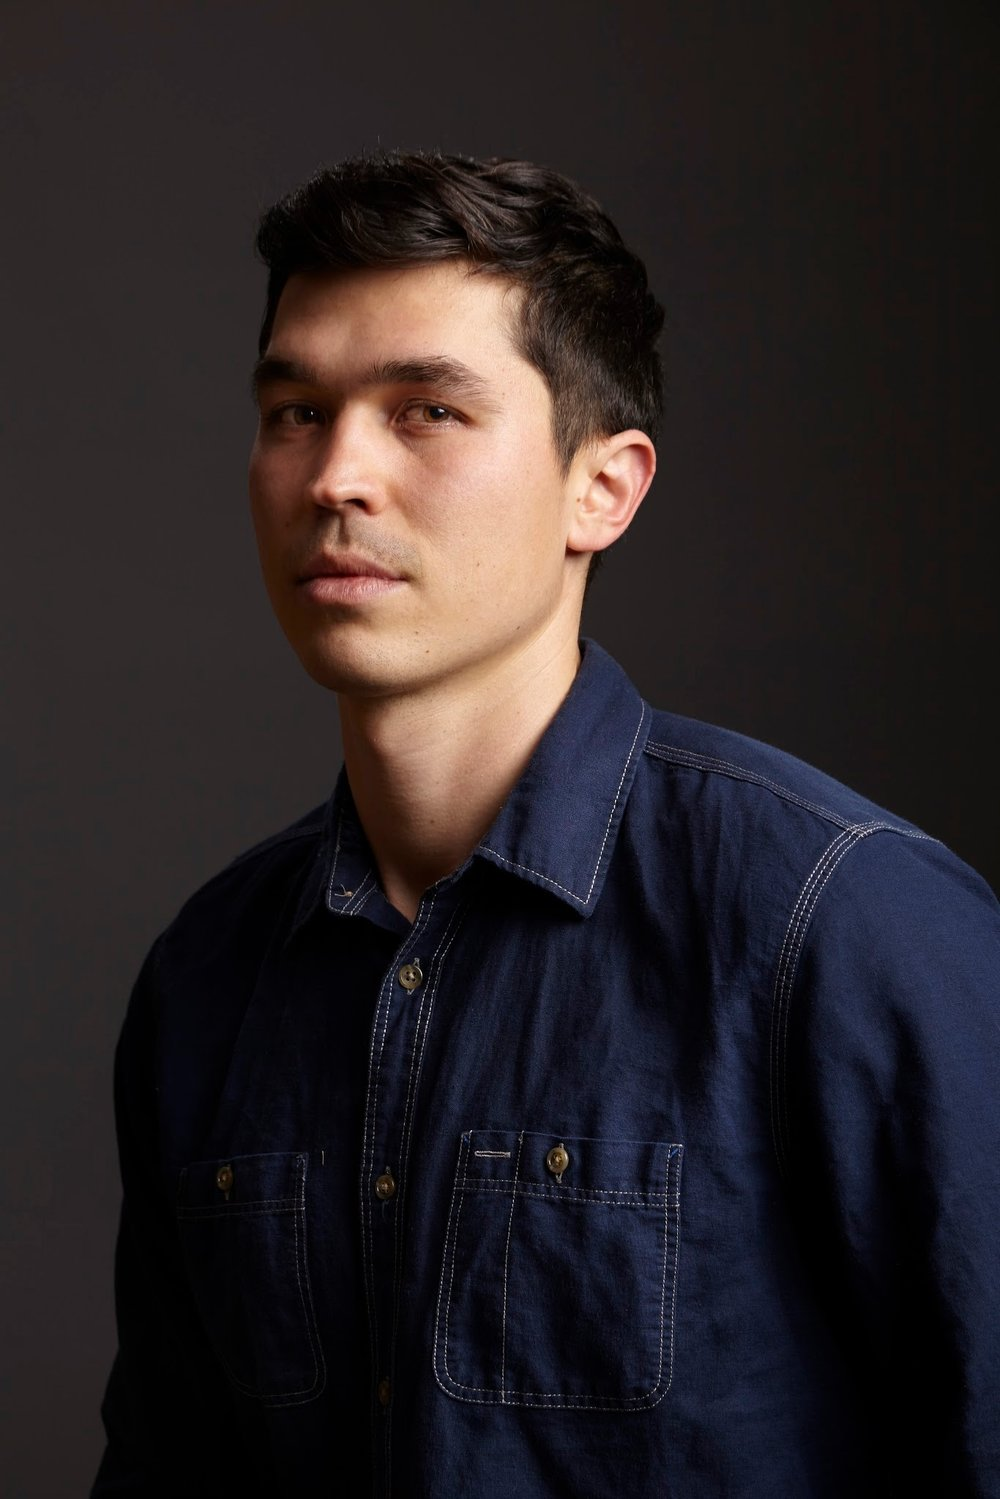 Colin Inaba Christy - founder of Hapa Inaba Designs, lead designer and craftsman.